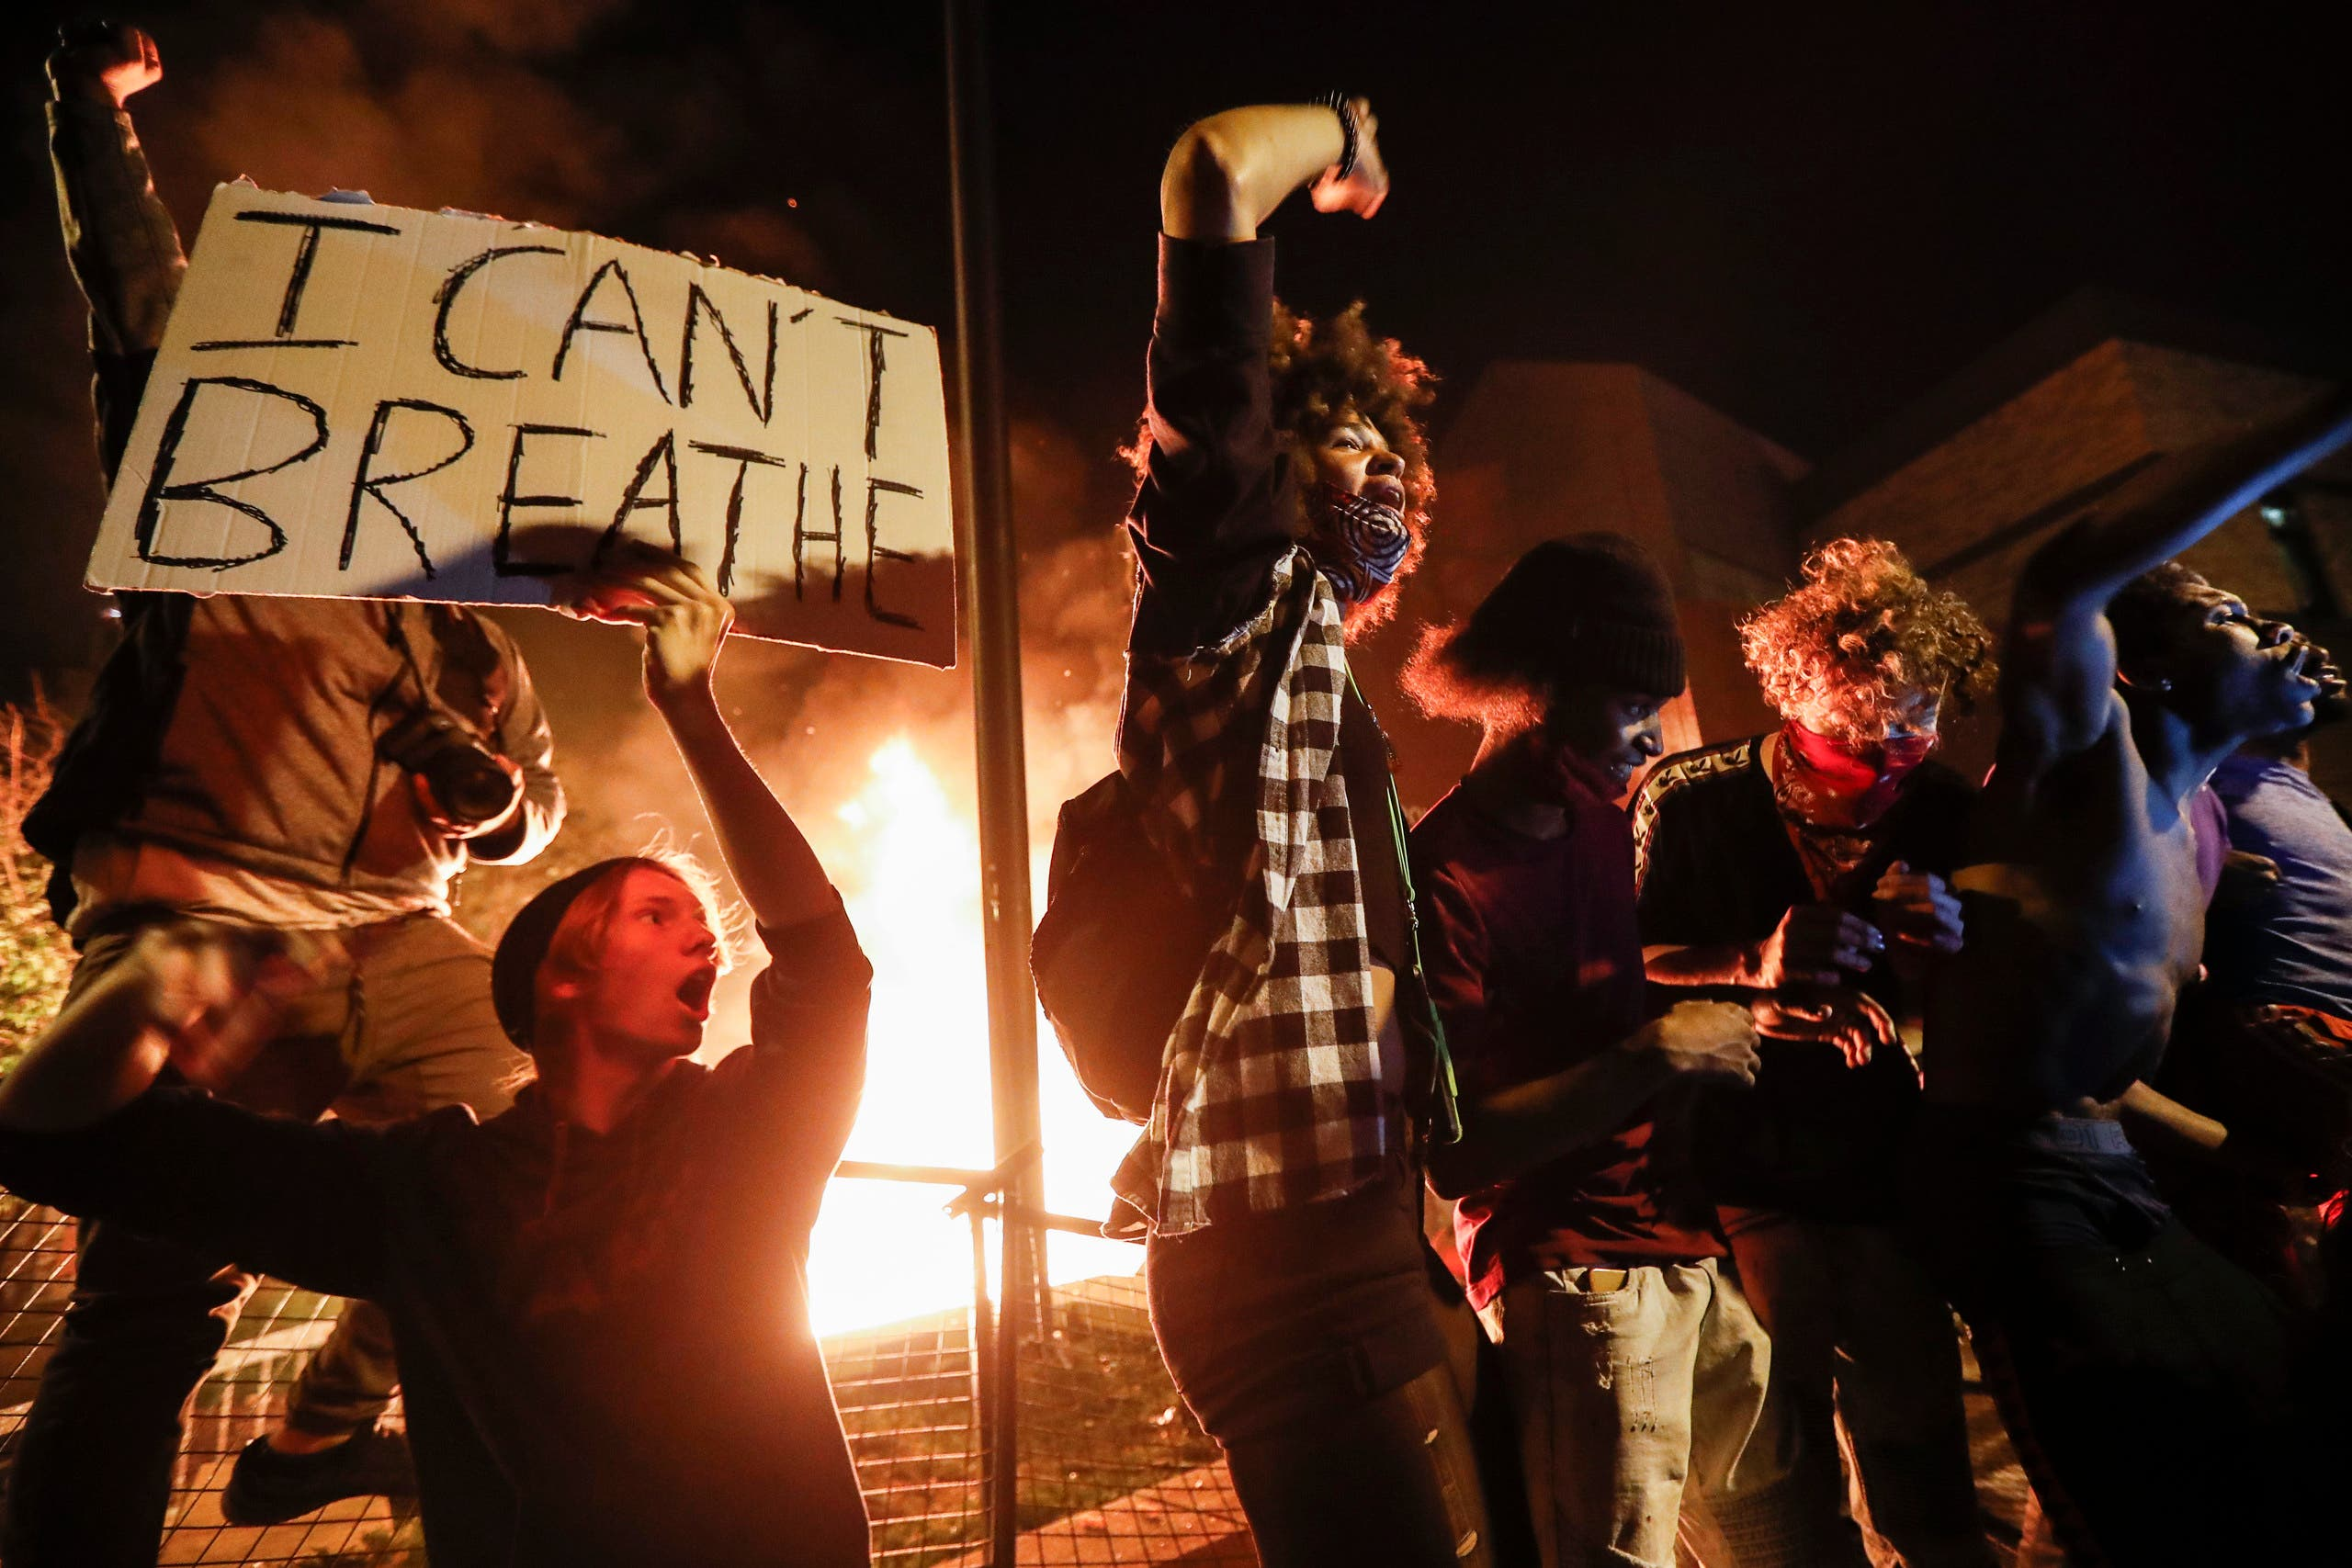 Protestors demonstrate outside of a burning Minneapolis 3rd Police Precinct, Thursday, May 28, 2020, in Minneapolis. Protests over the death of George Floyd, a black man who died in police custody Monday, broke out in Minneapolis for a third straight night. (AP)